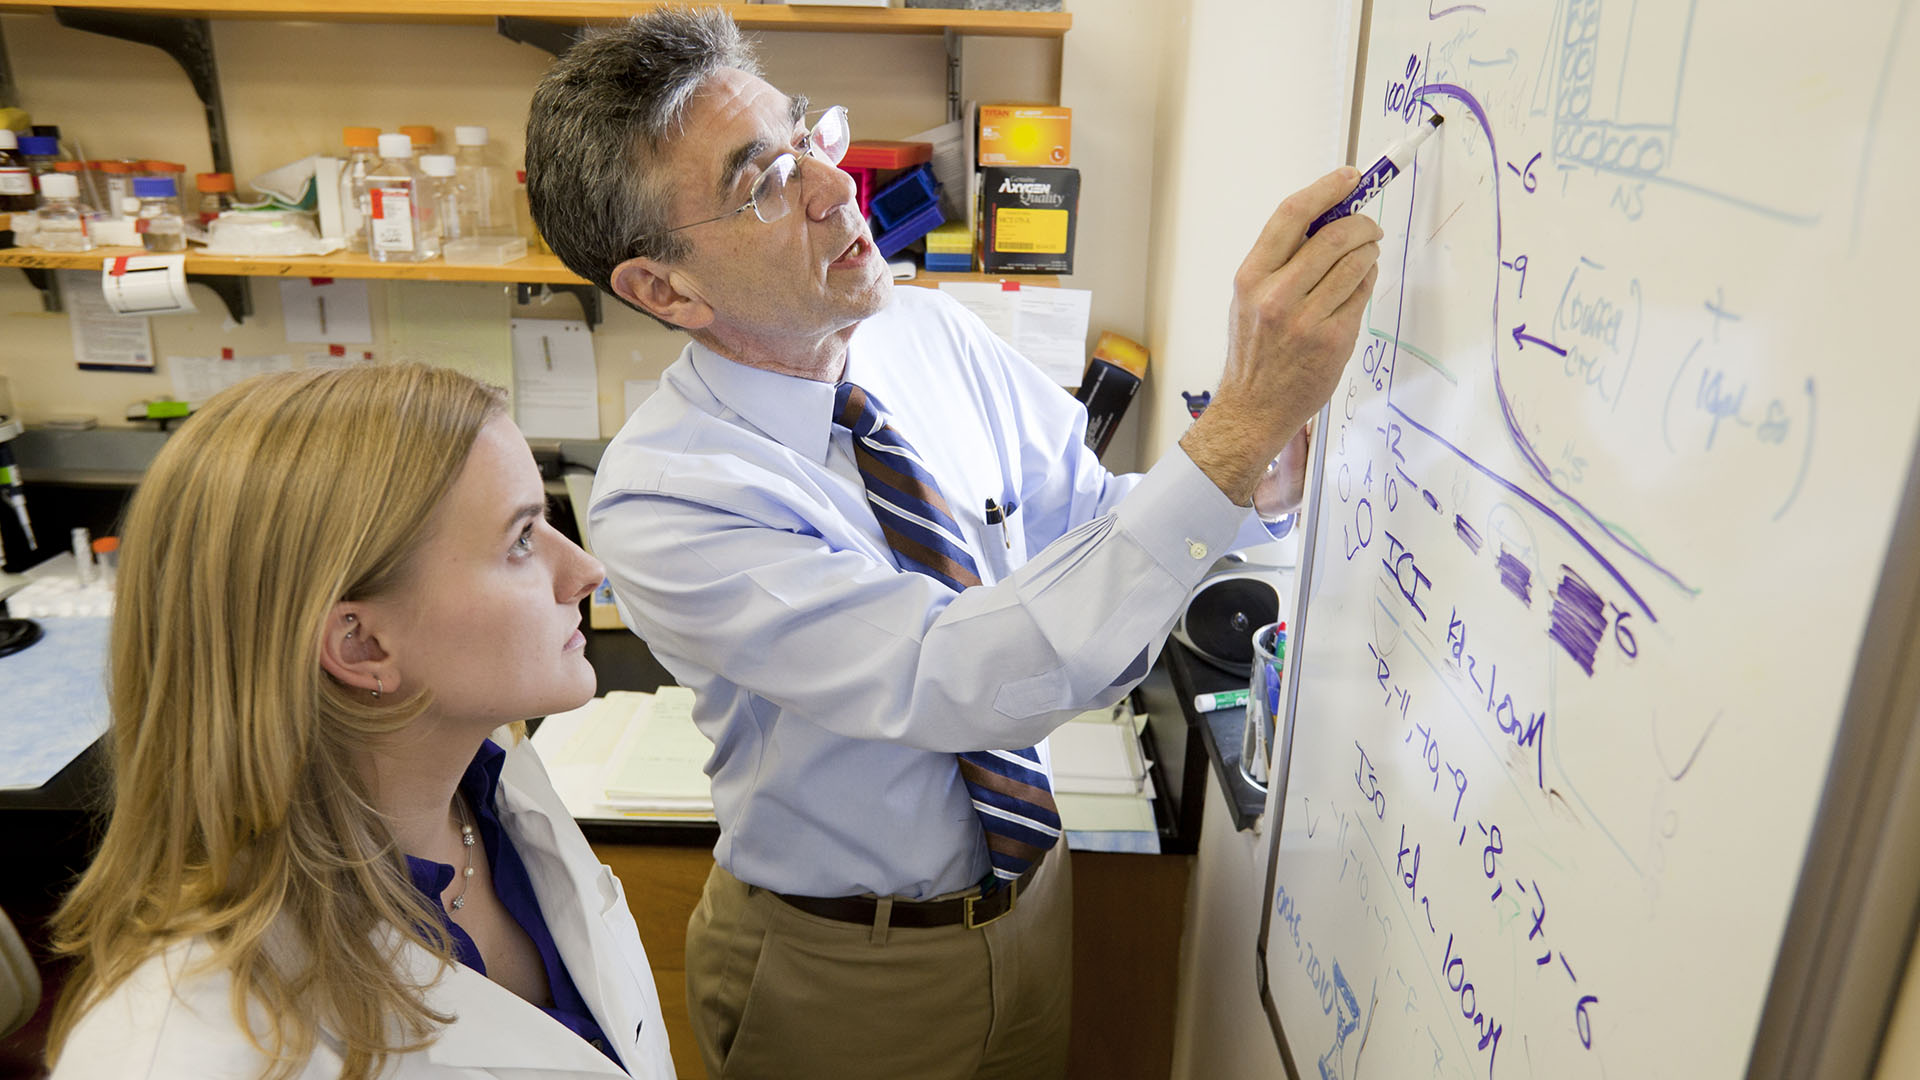 Dr. Robert Lefkowitz reviews a graph with a female medical student.